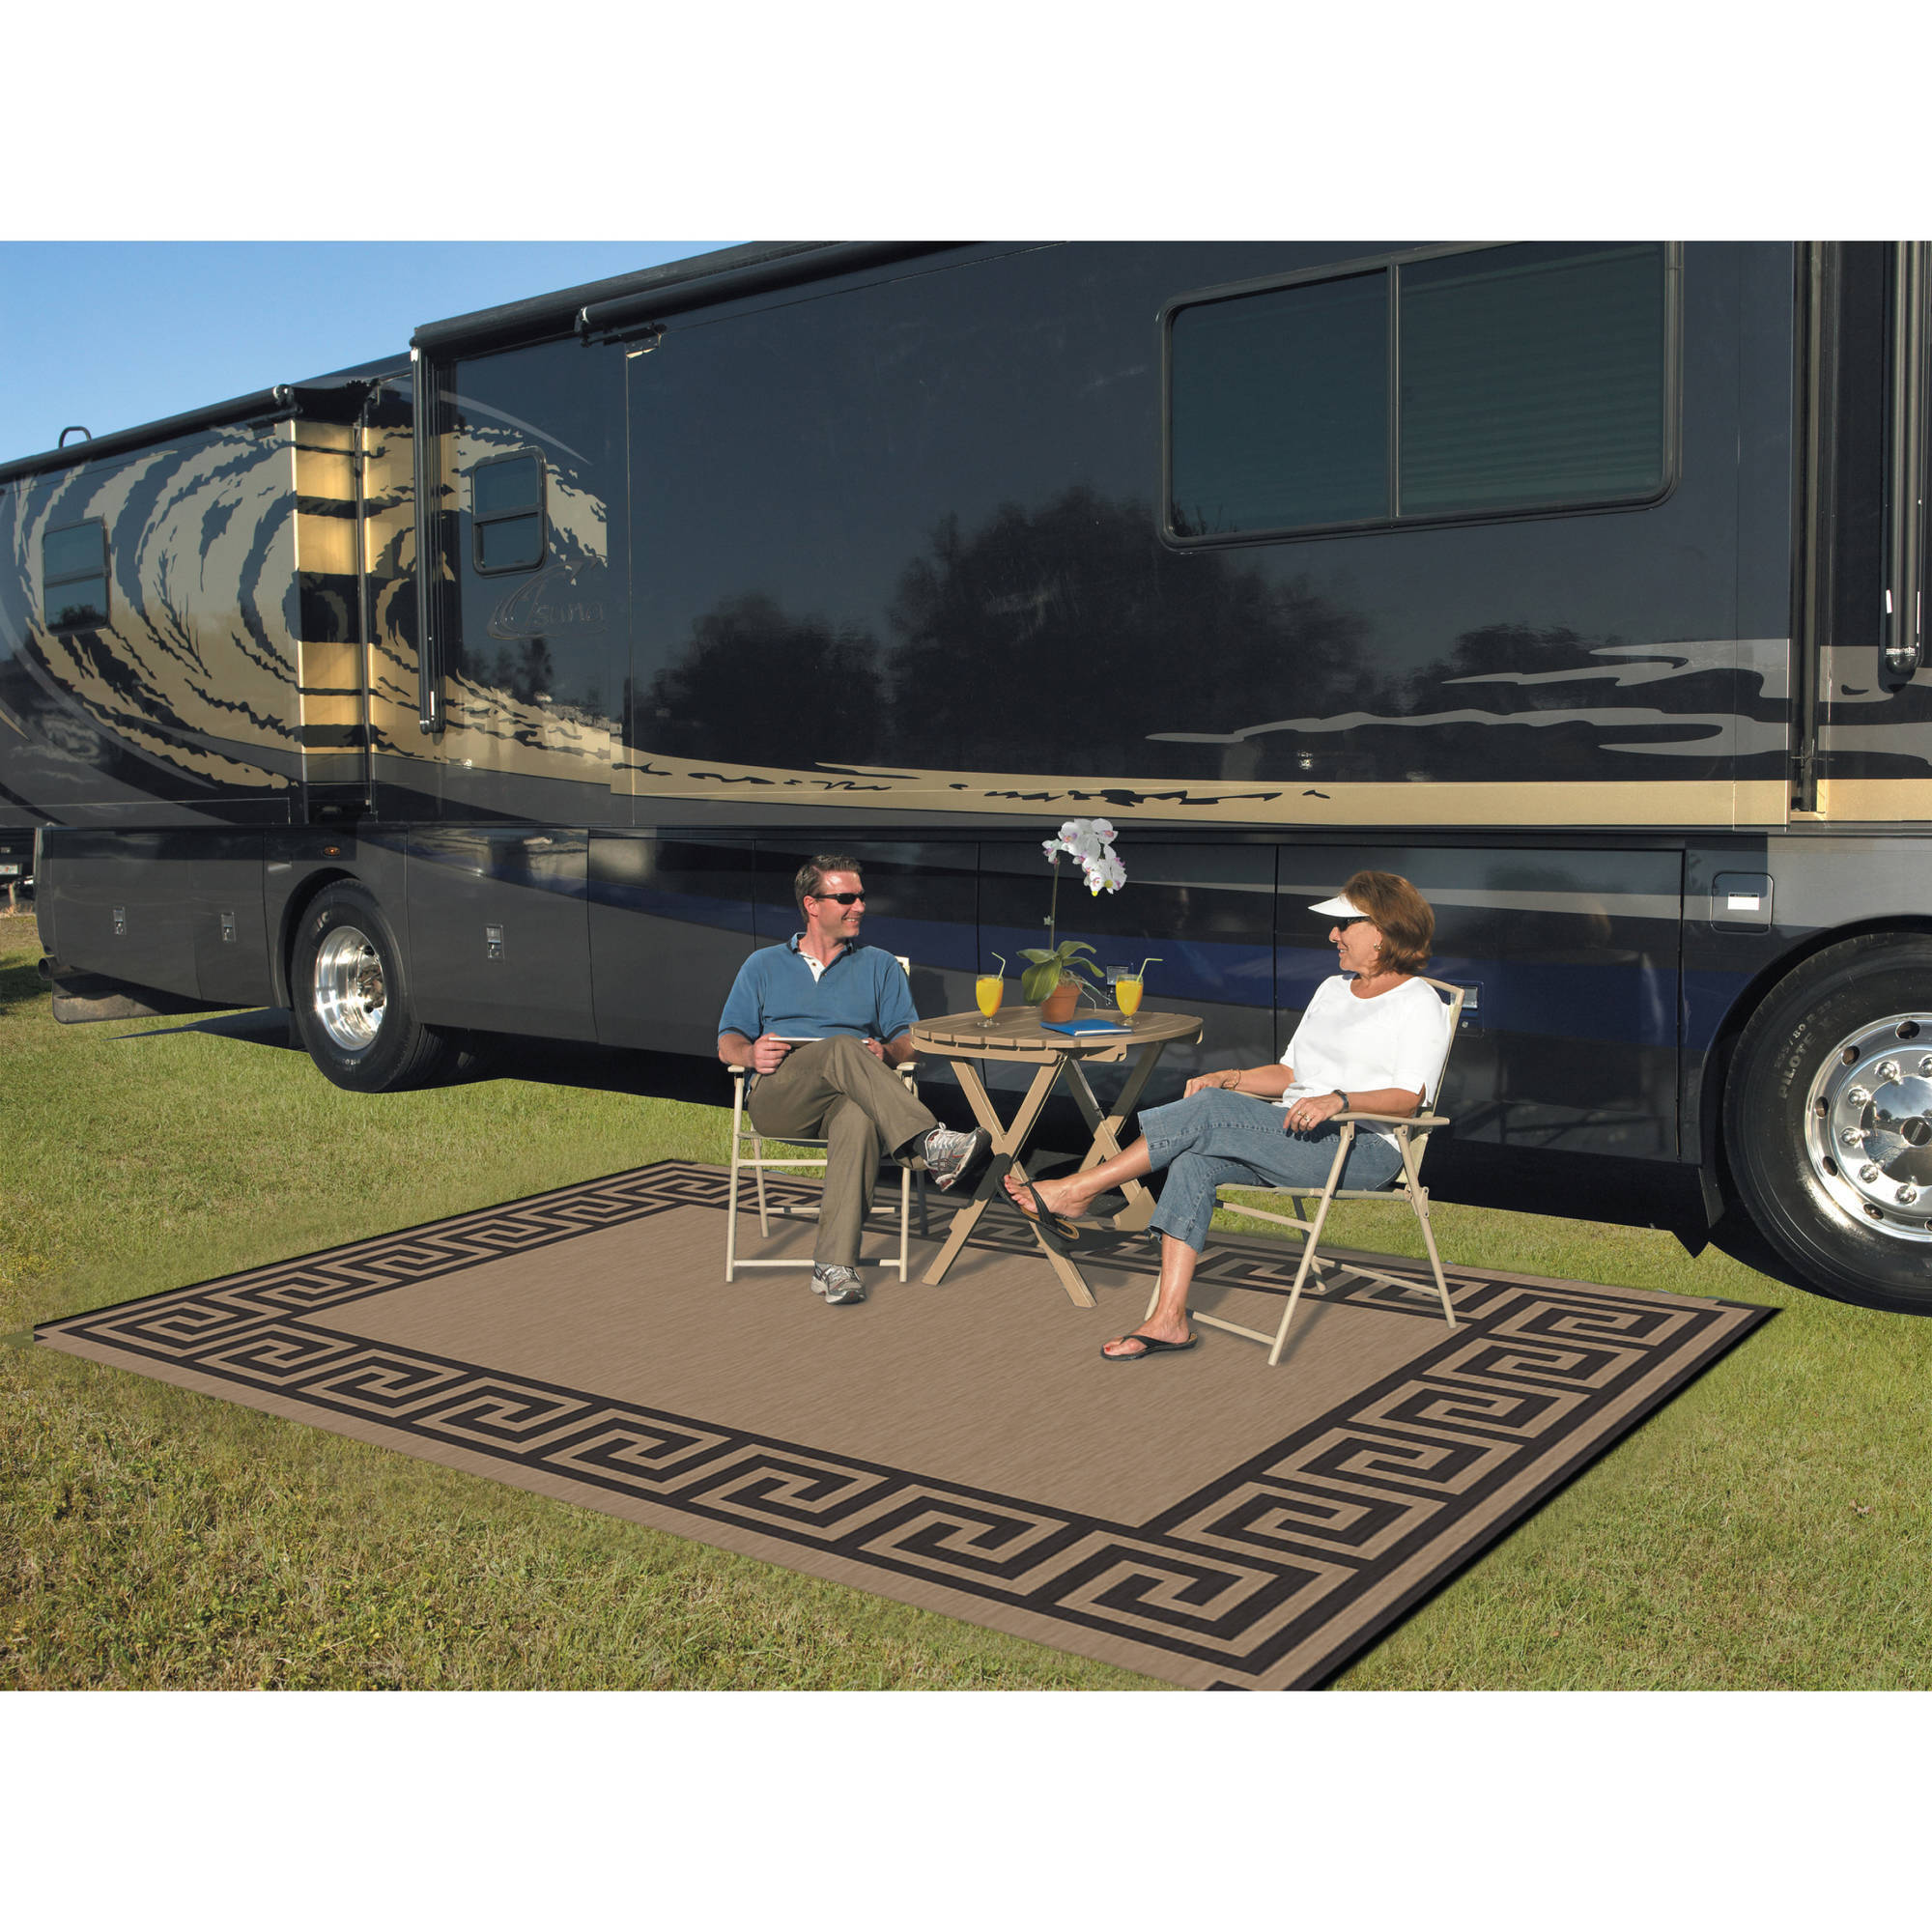 Patio Mats 9' x 12' Reversible RV Patio Mat, Indoor / Outdoor Rug, Camping Mat, Greek Key